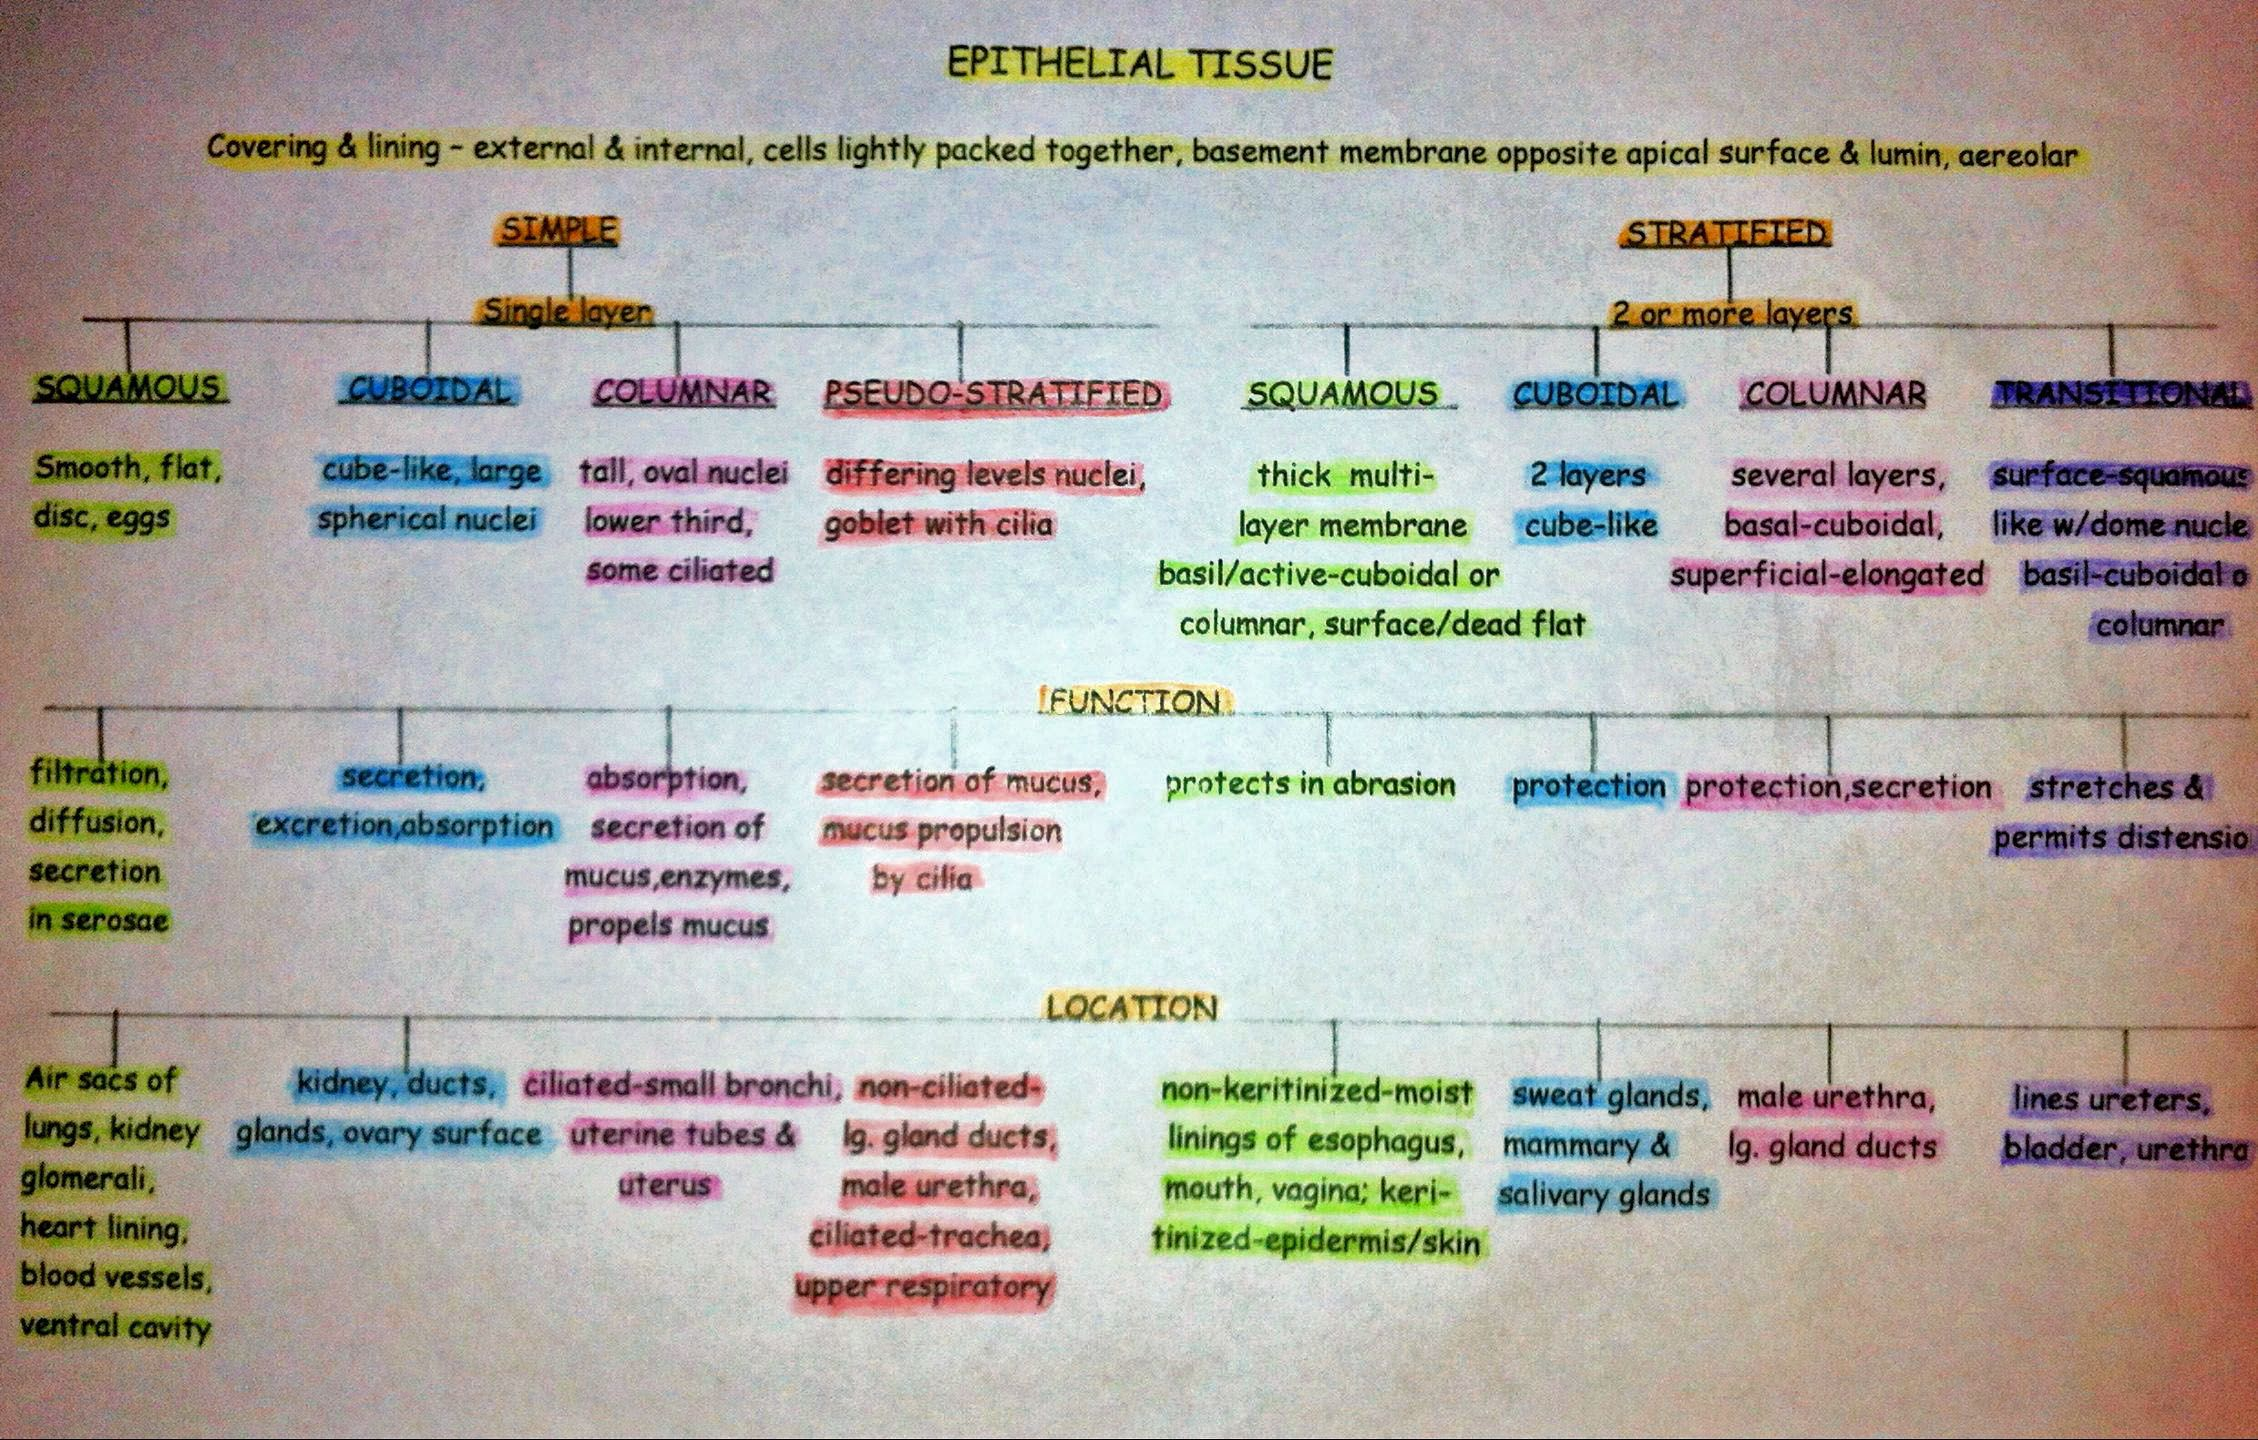 Epithelial Tissue Breakdown